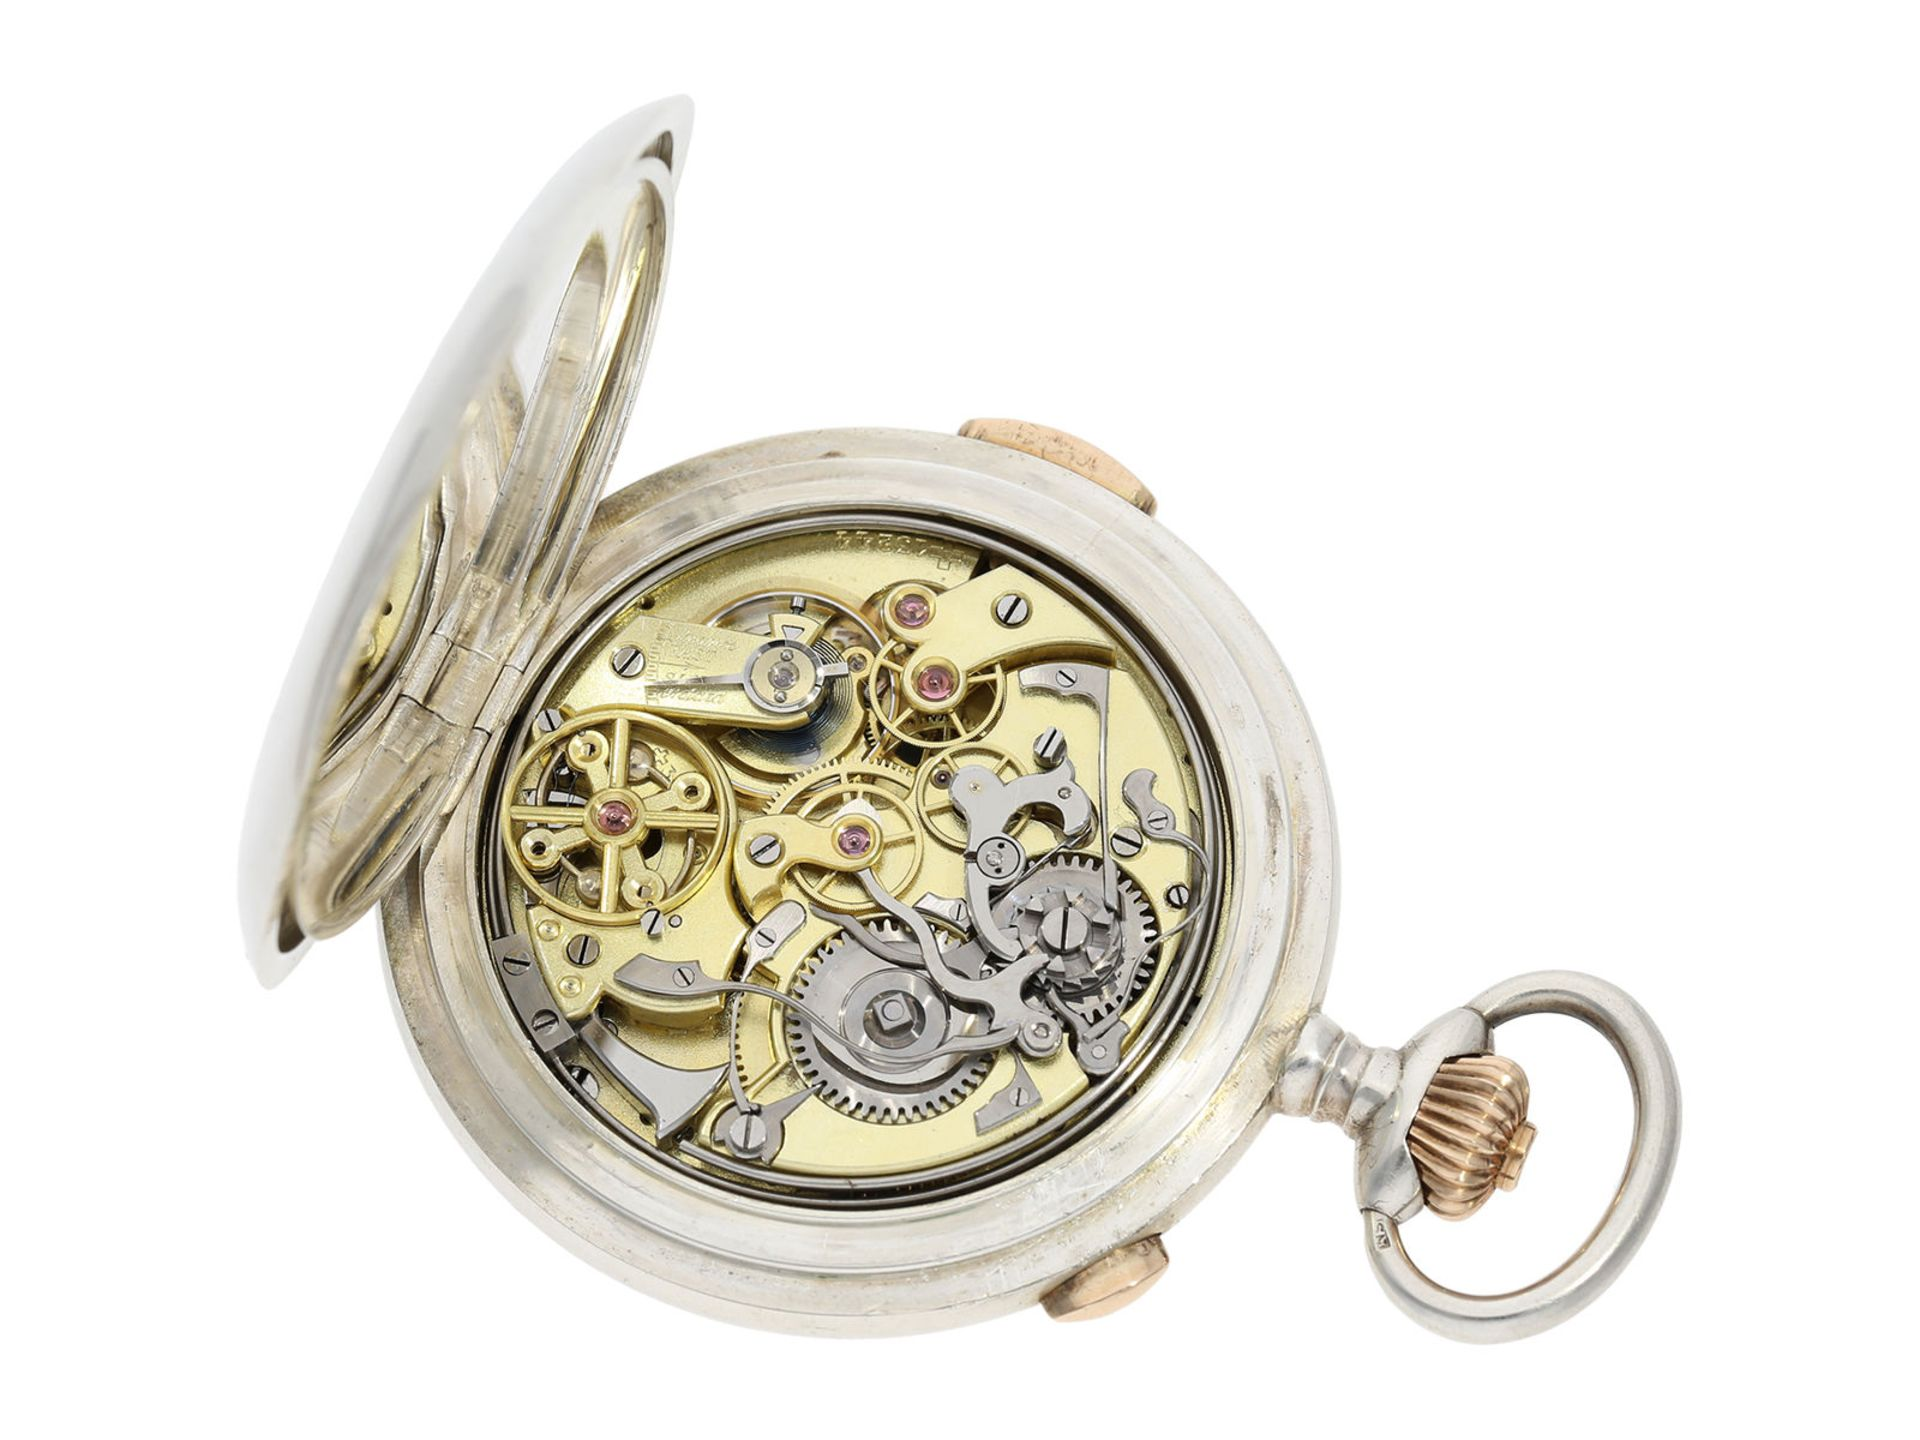 Pocket watch: high quality hunting case watch repeater with chronograph, Patent Swiss 13944 ( - Bild 4 aus 7